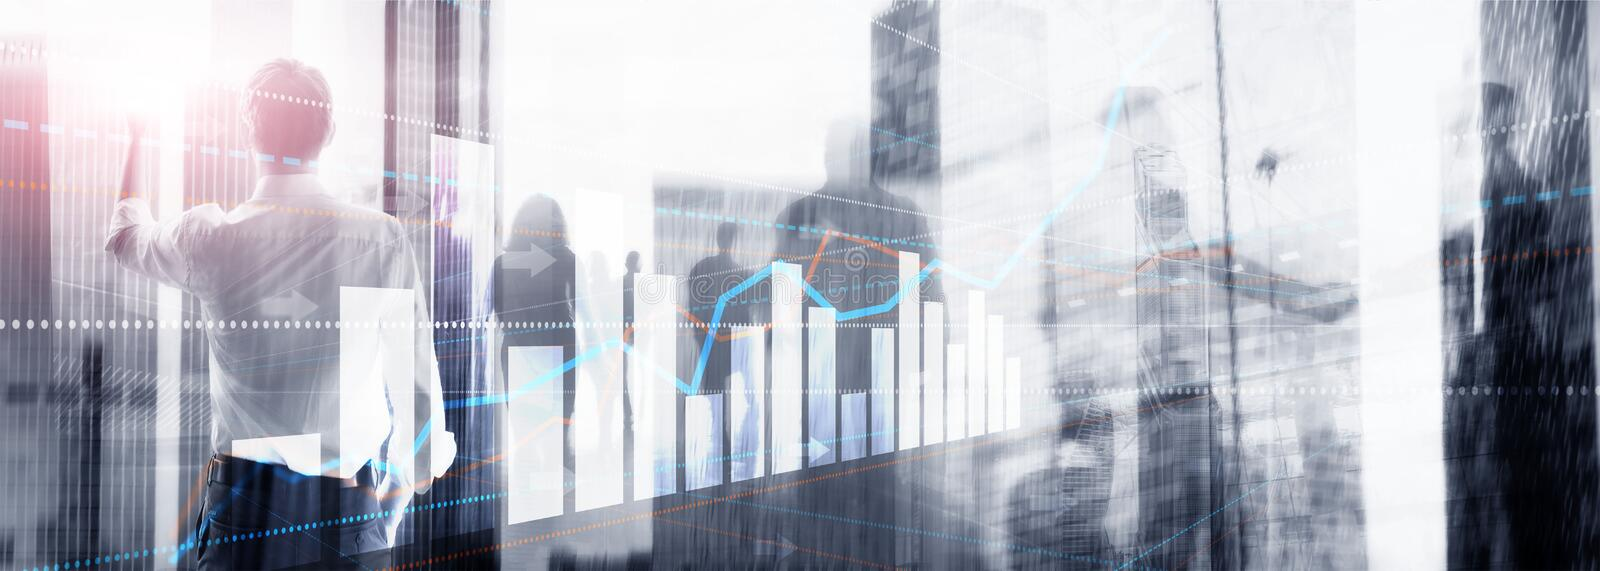 Silhouettes of people on city background for financial investment or Economic trends business idea and art work design. Abstract Double exposure Universal royalty free stock images